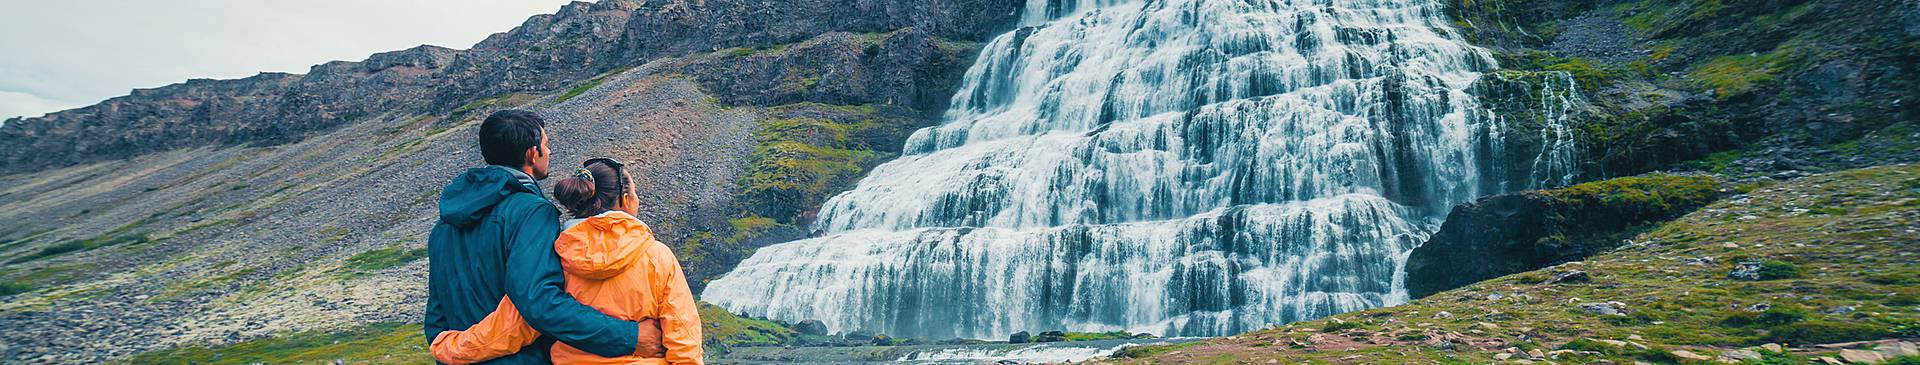 Couples holidays in Iceland